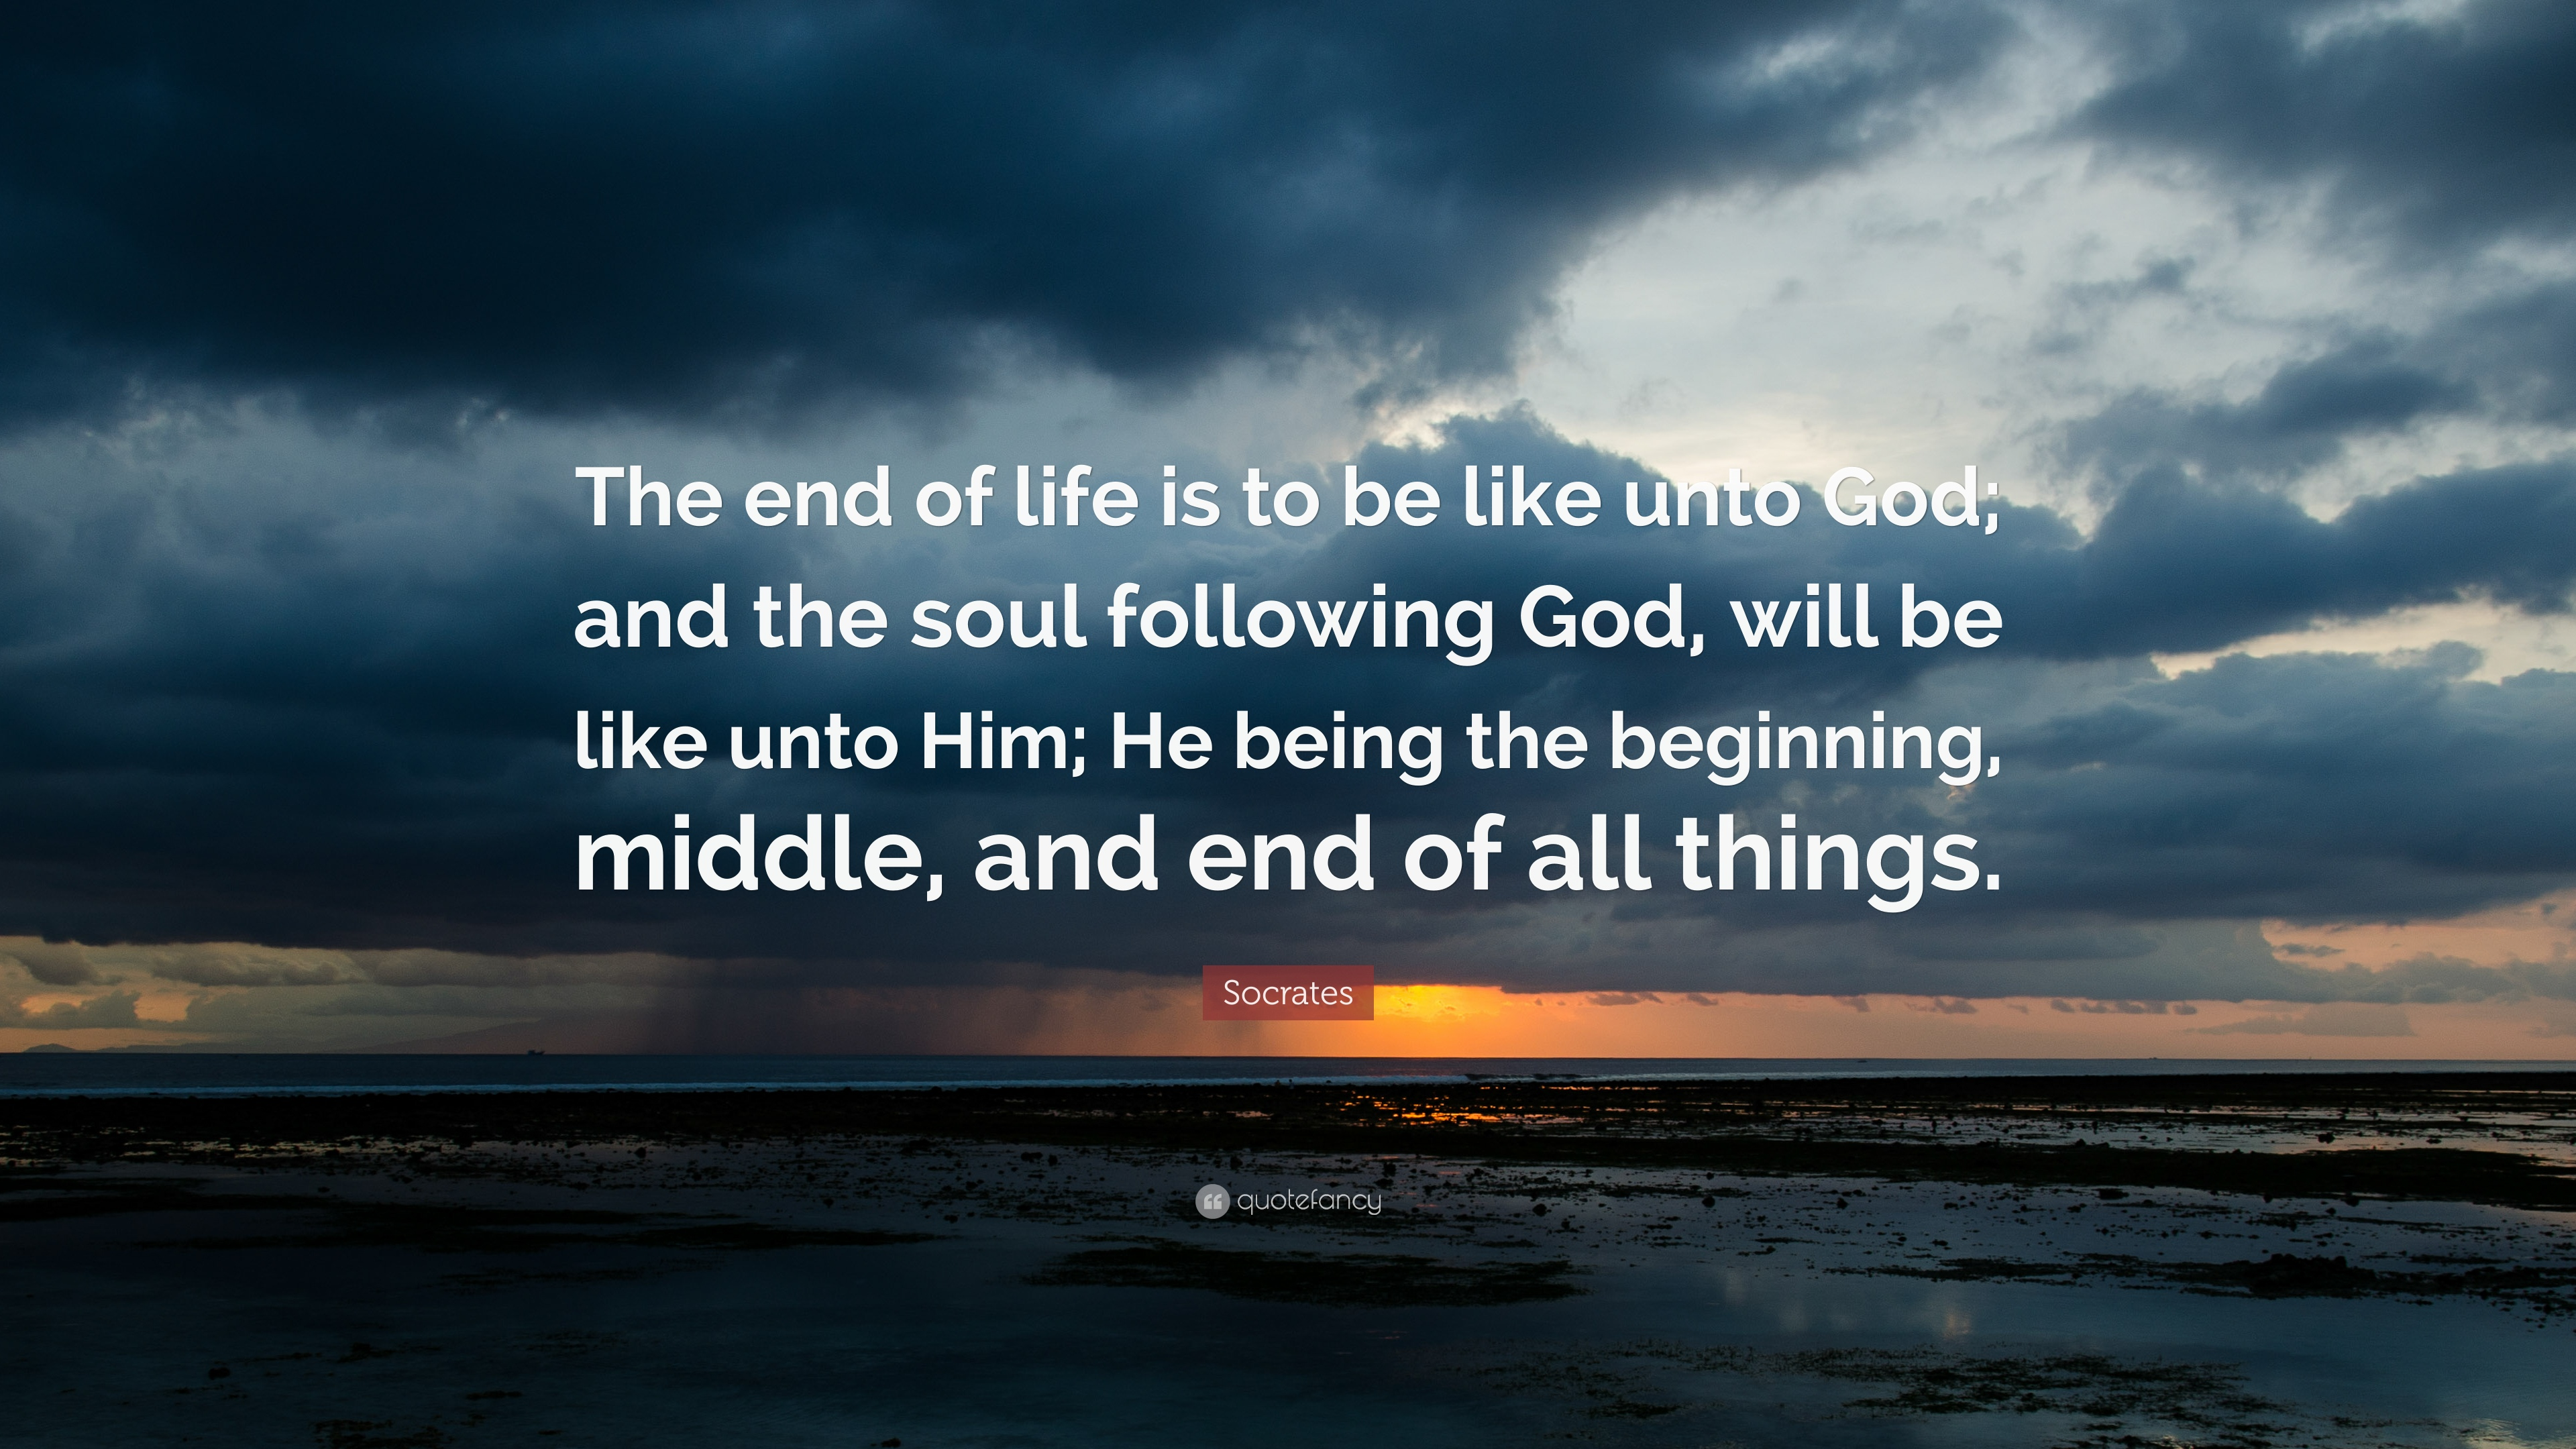 Socrates Quote: U201cThe End Of Life Is To Be Like Unto God; And